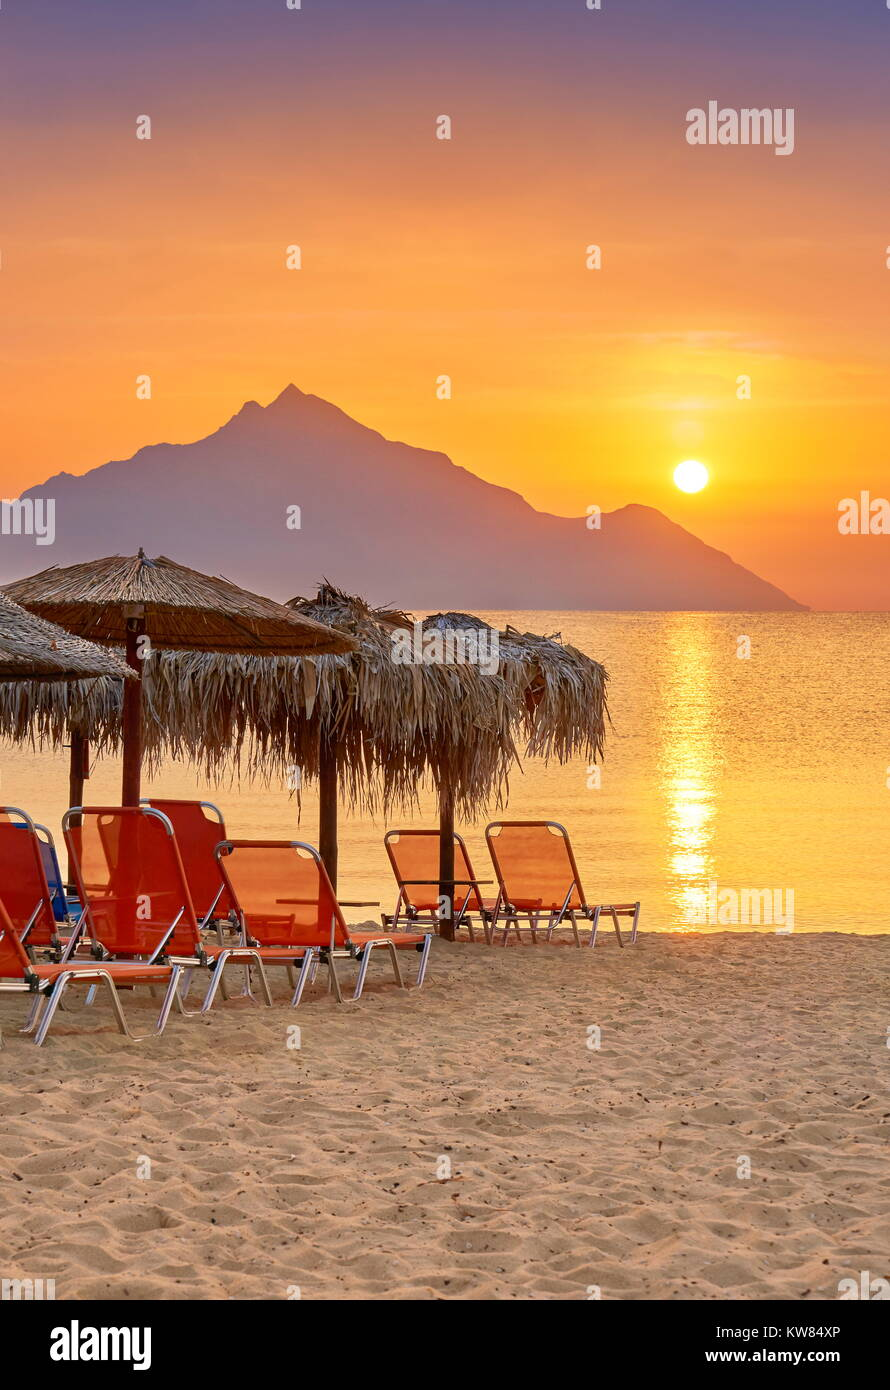 Sunrise at Halkidiki (or Chalkidiki) Beach, Mount Athos in the background, Greece - Stock Image